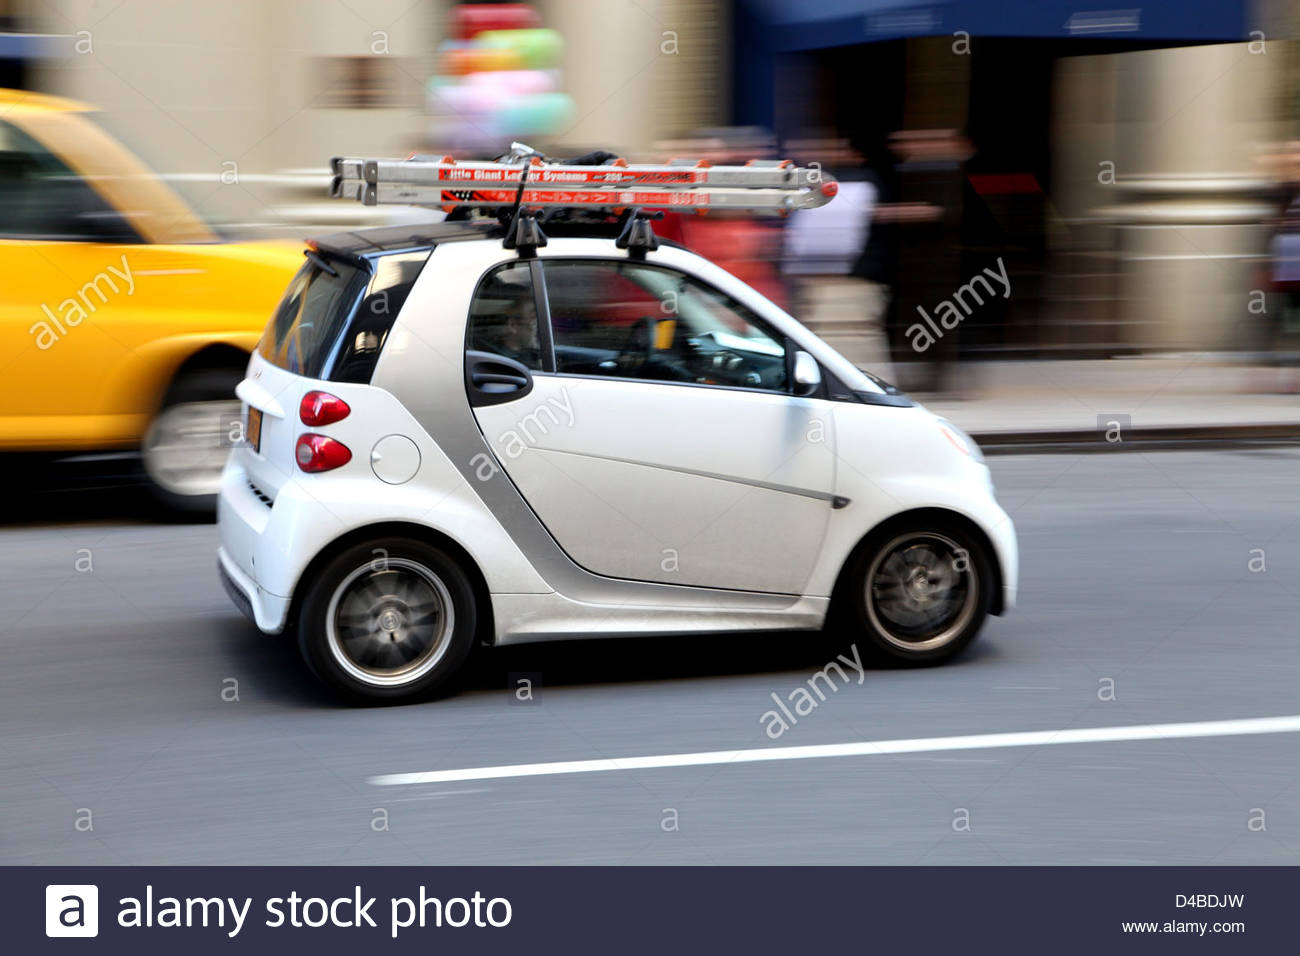 a white smart car with roof rack and step ladder stock photo 54341921 alamy. Black Bedroom Furniture Sets. Home Design Ideas